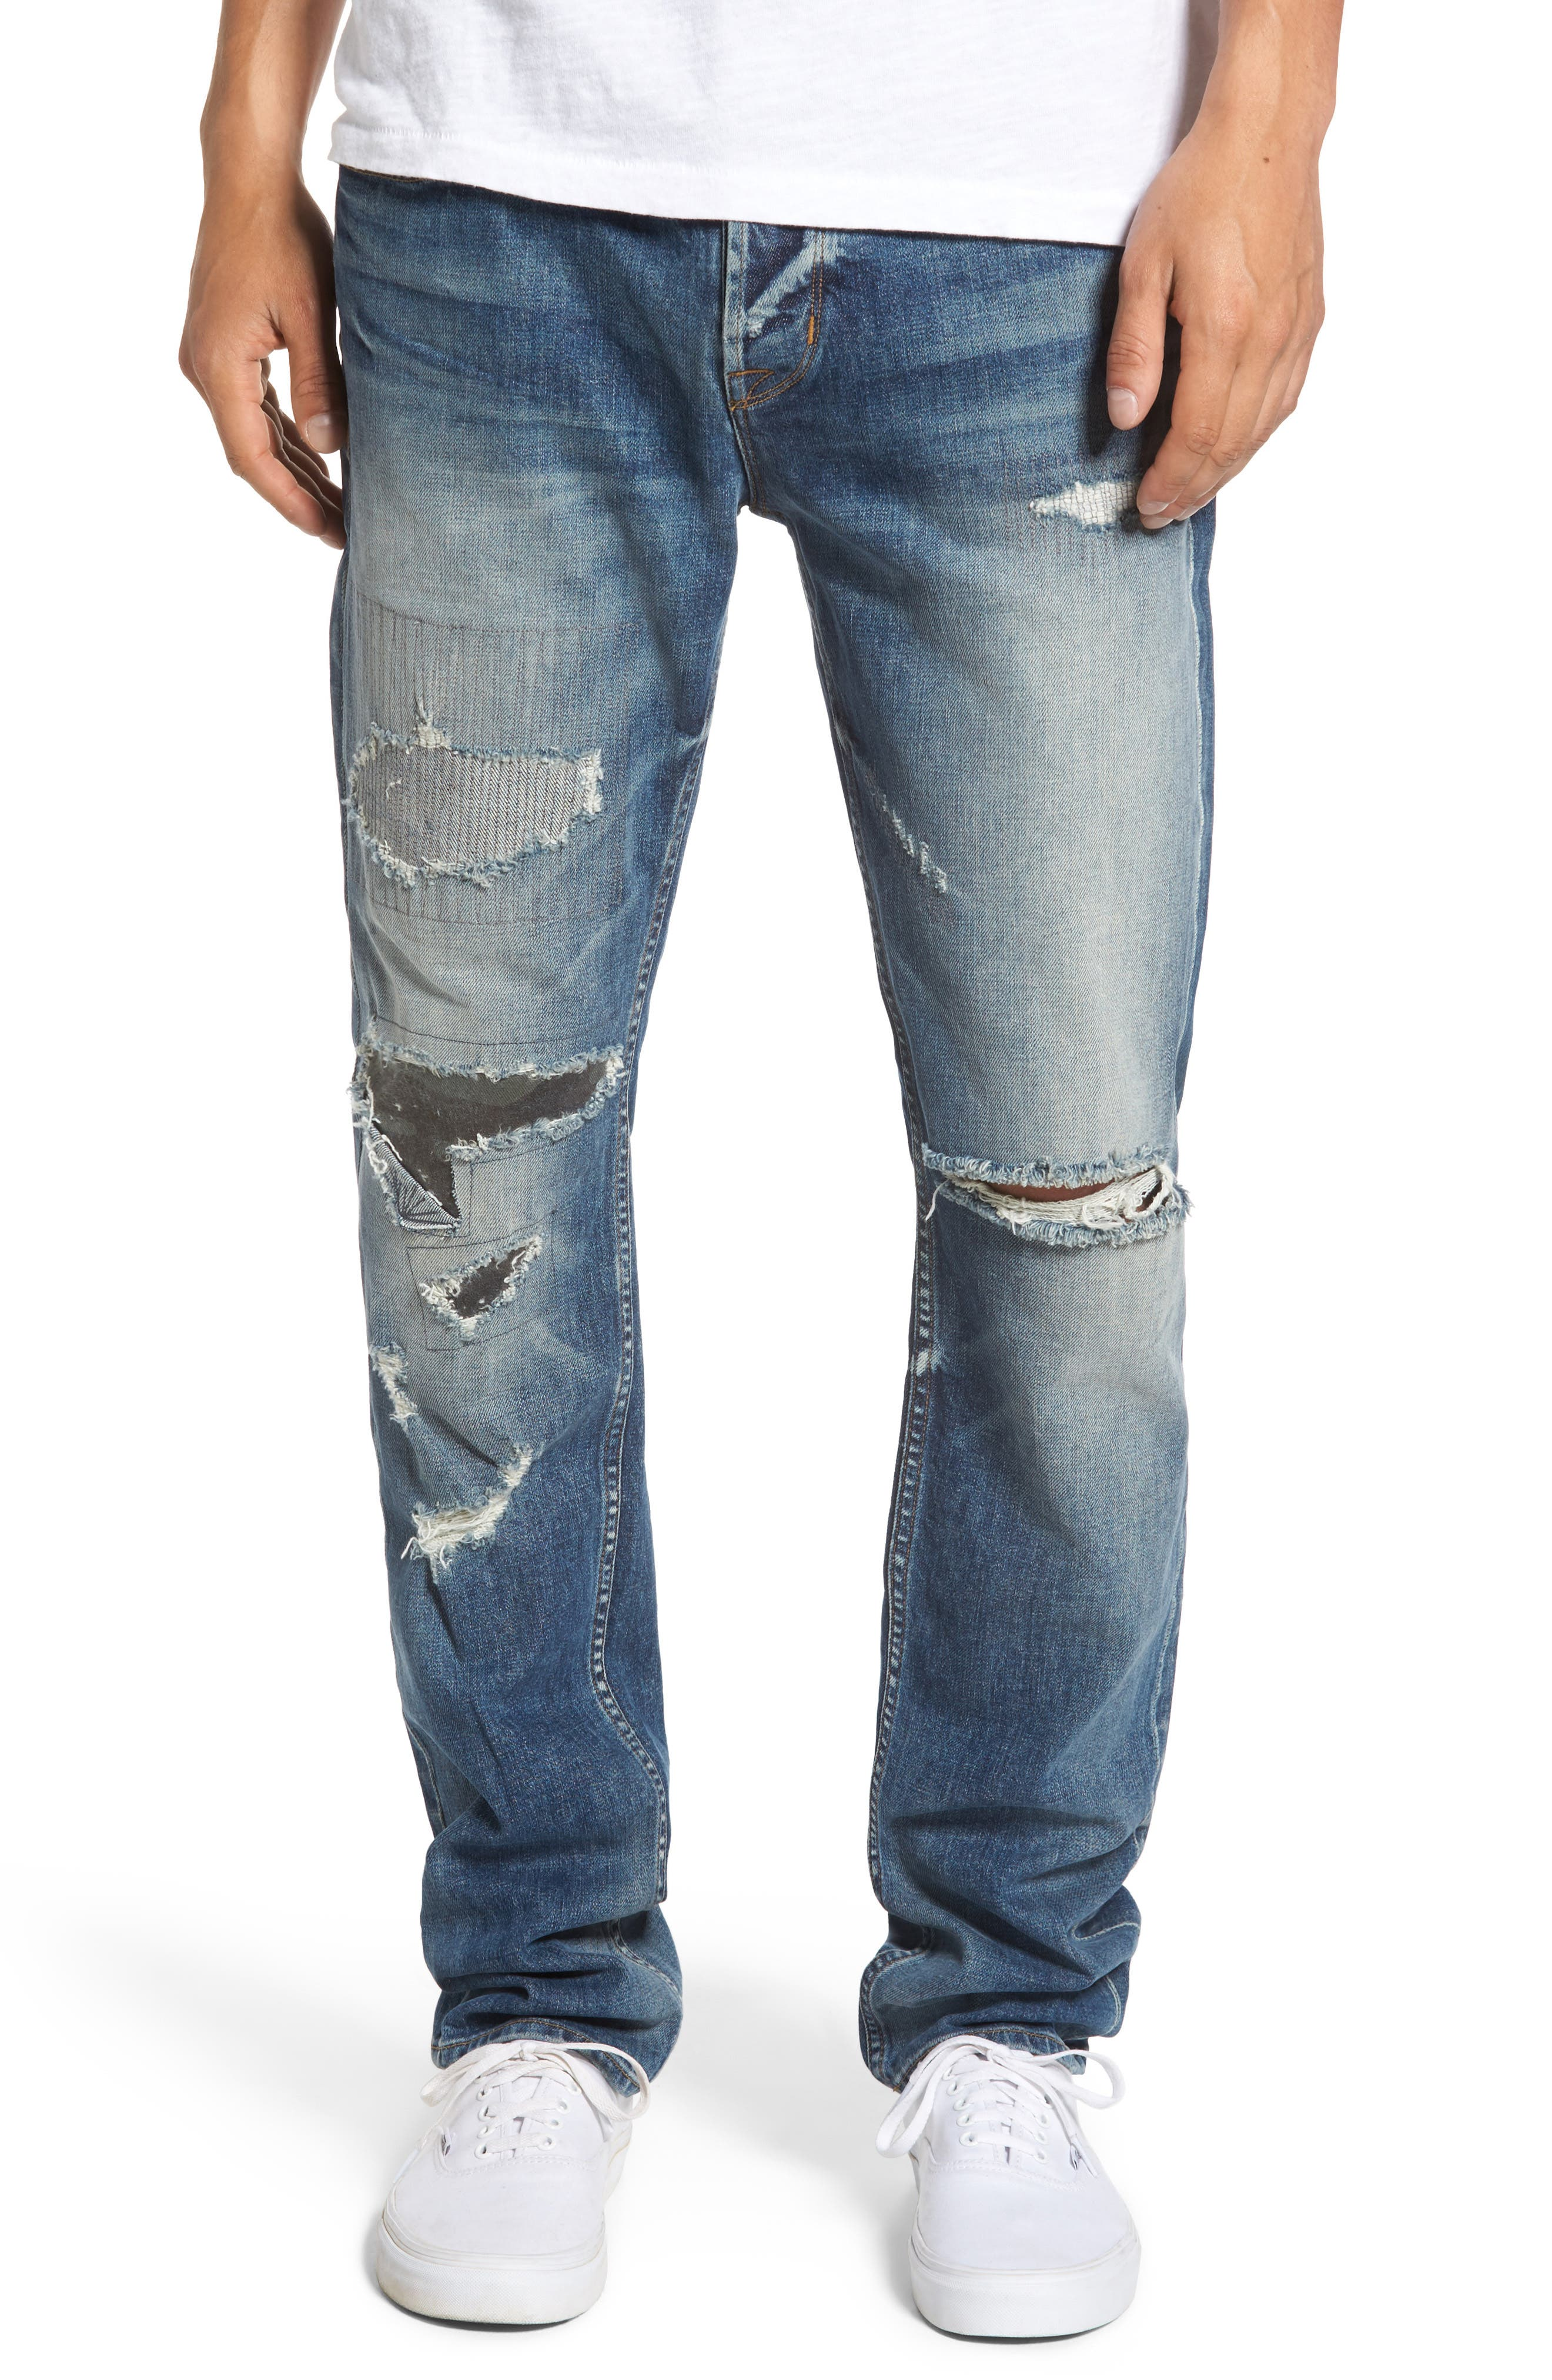 Alternate Image 1 Selected - Hudson Jeans Sartor Slouchy Skinny Jeans (Tail Gunner)